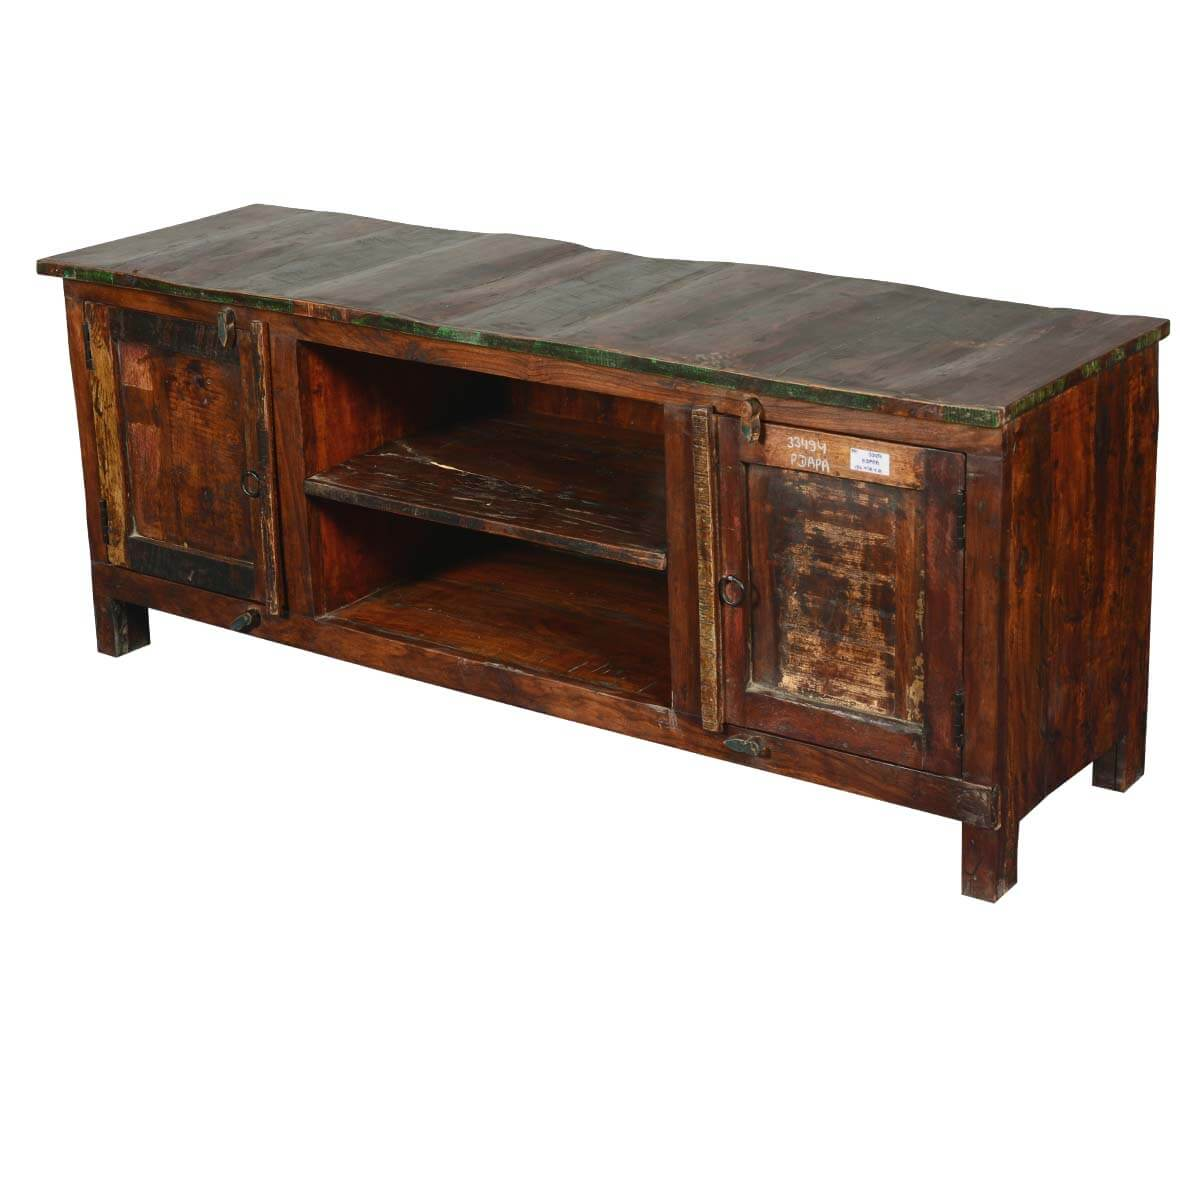 Frontier Rustic Reclaimed Wood Tv Console Media Cabinet